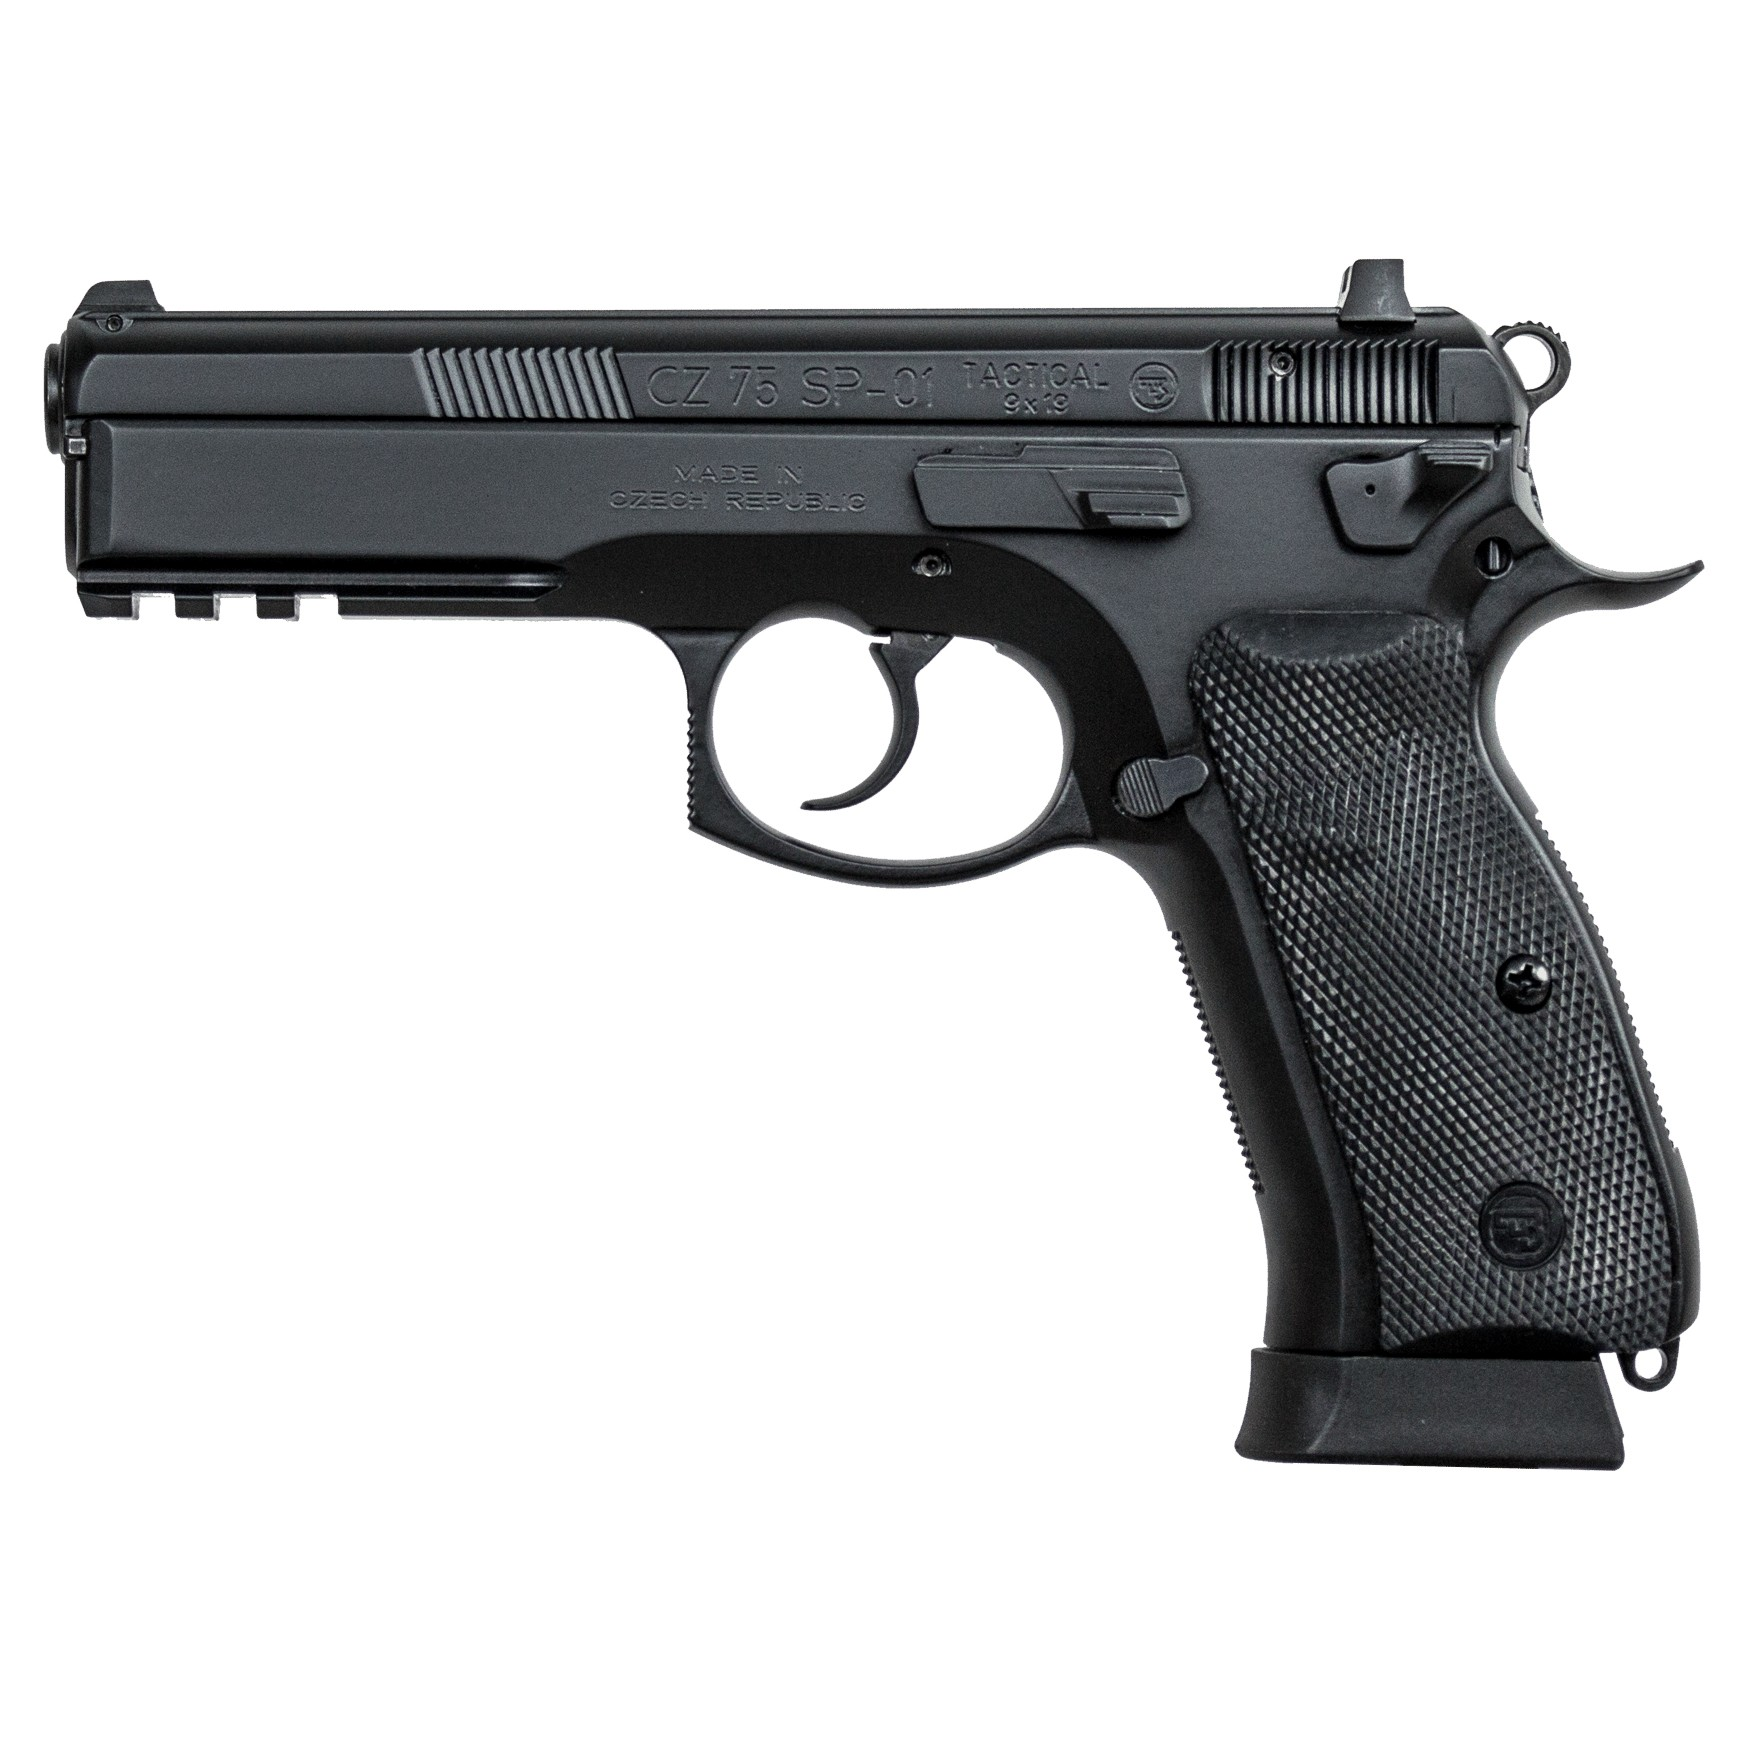 CZ-USA 75 SP-01 Tactical 9mm Luger